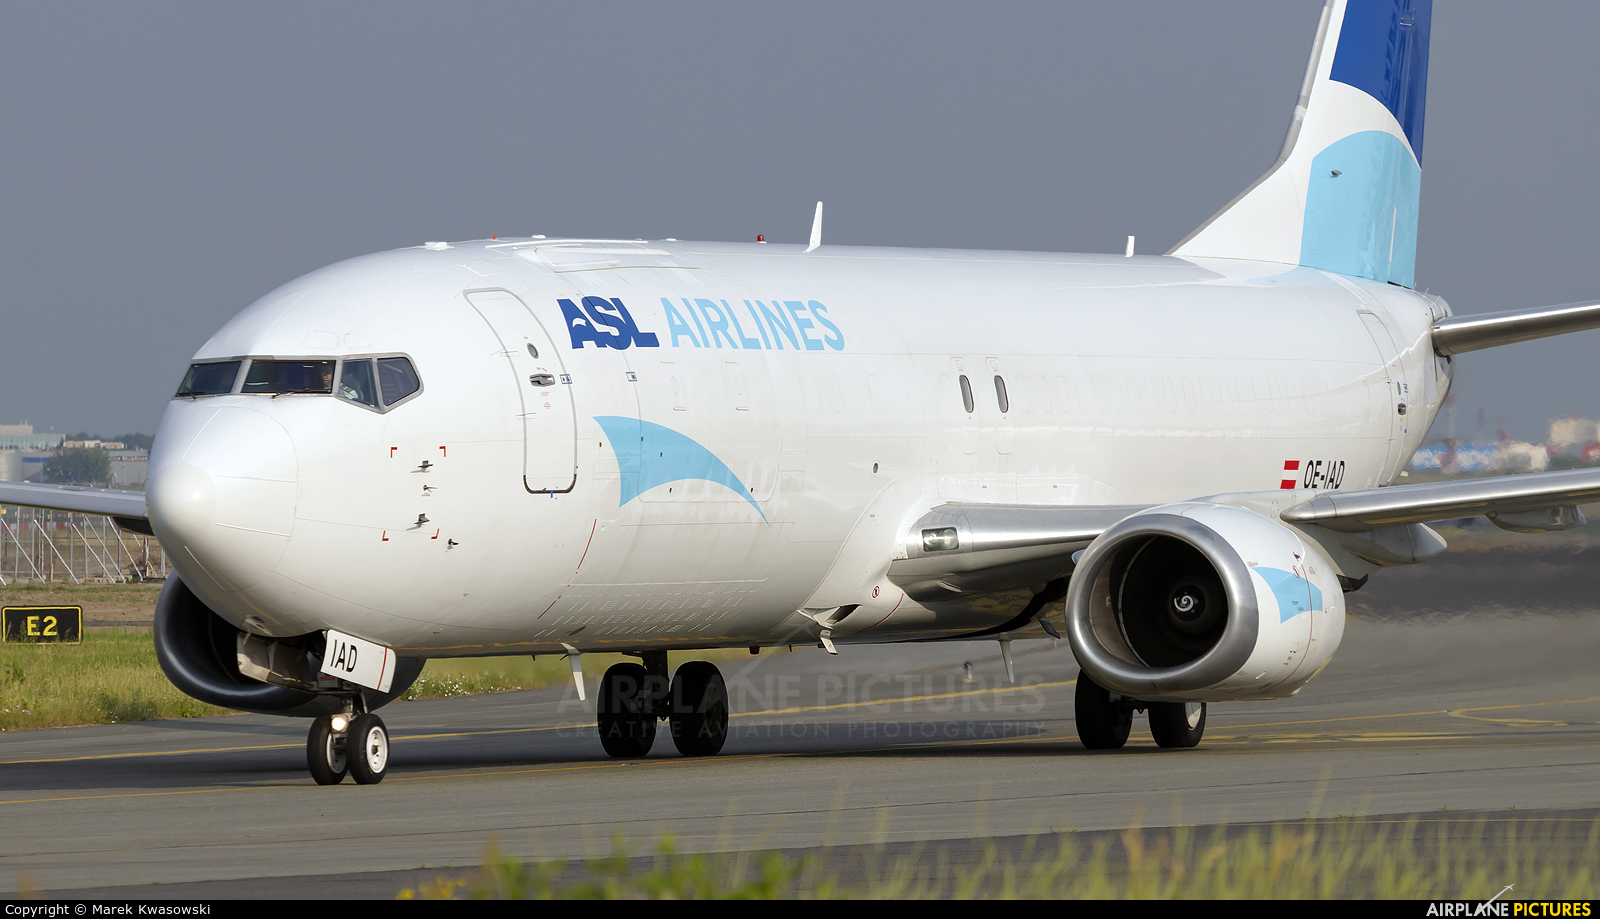 ASL Airlines Belgium OE-IAD aircraft at Warsaw - Frederic Chopin